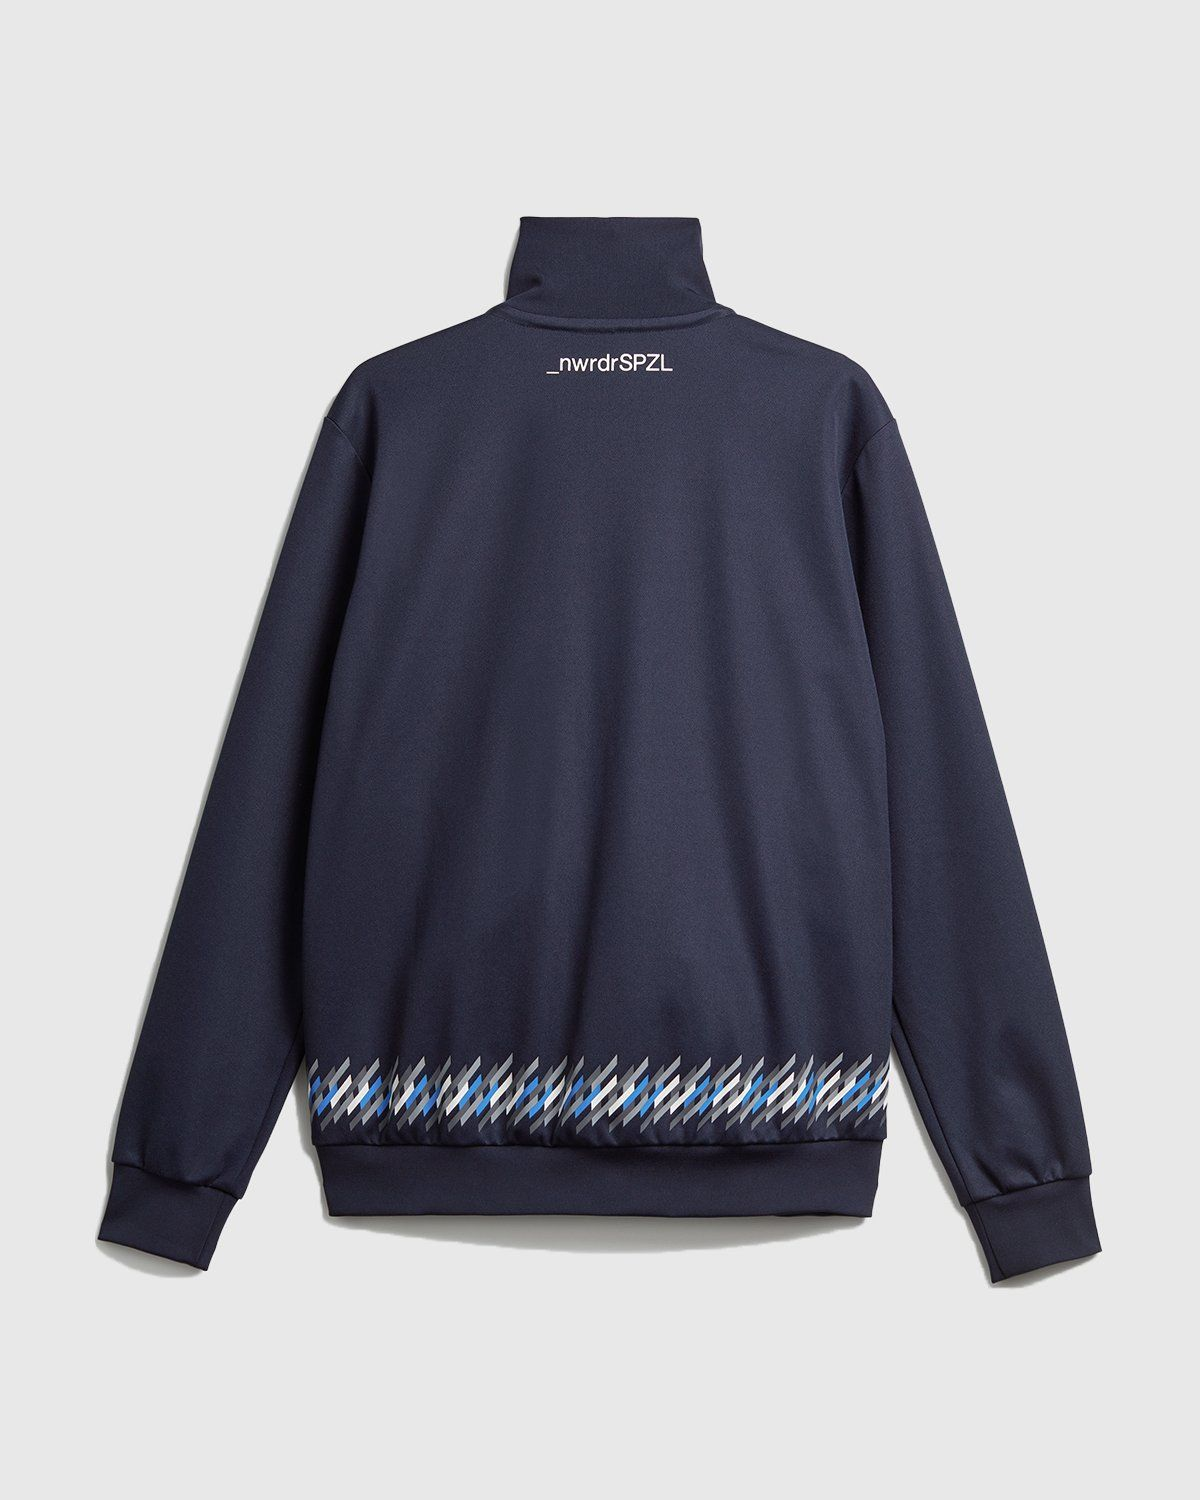 Adidas — Track Top Spezial x New Order Navy - Image 2